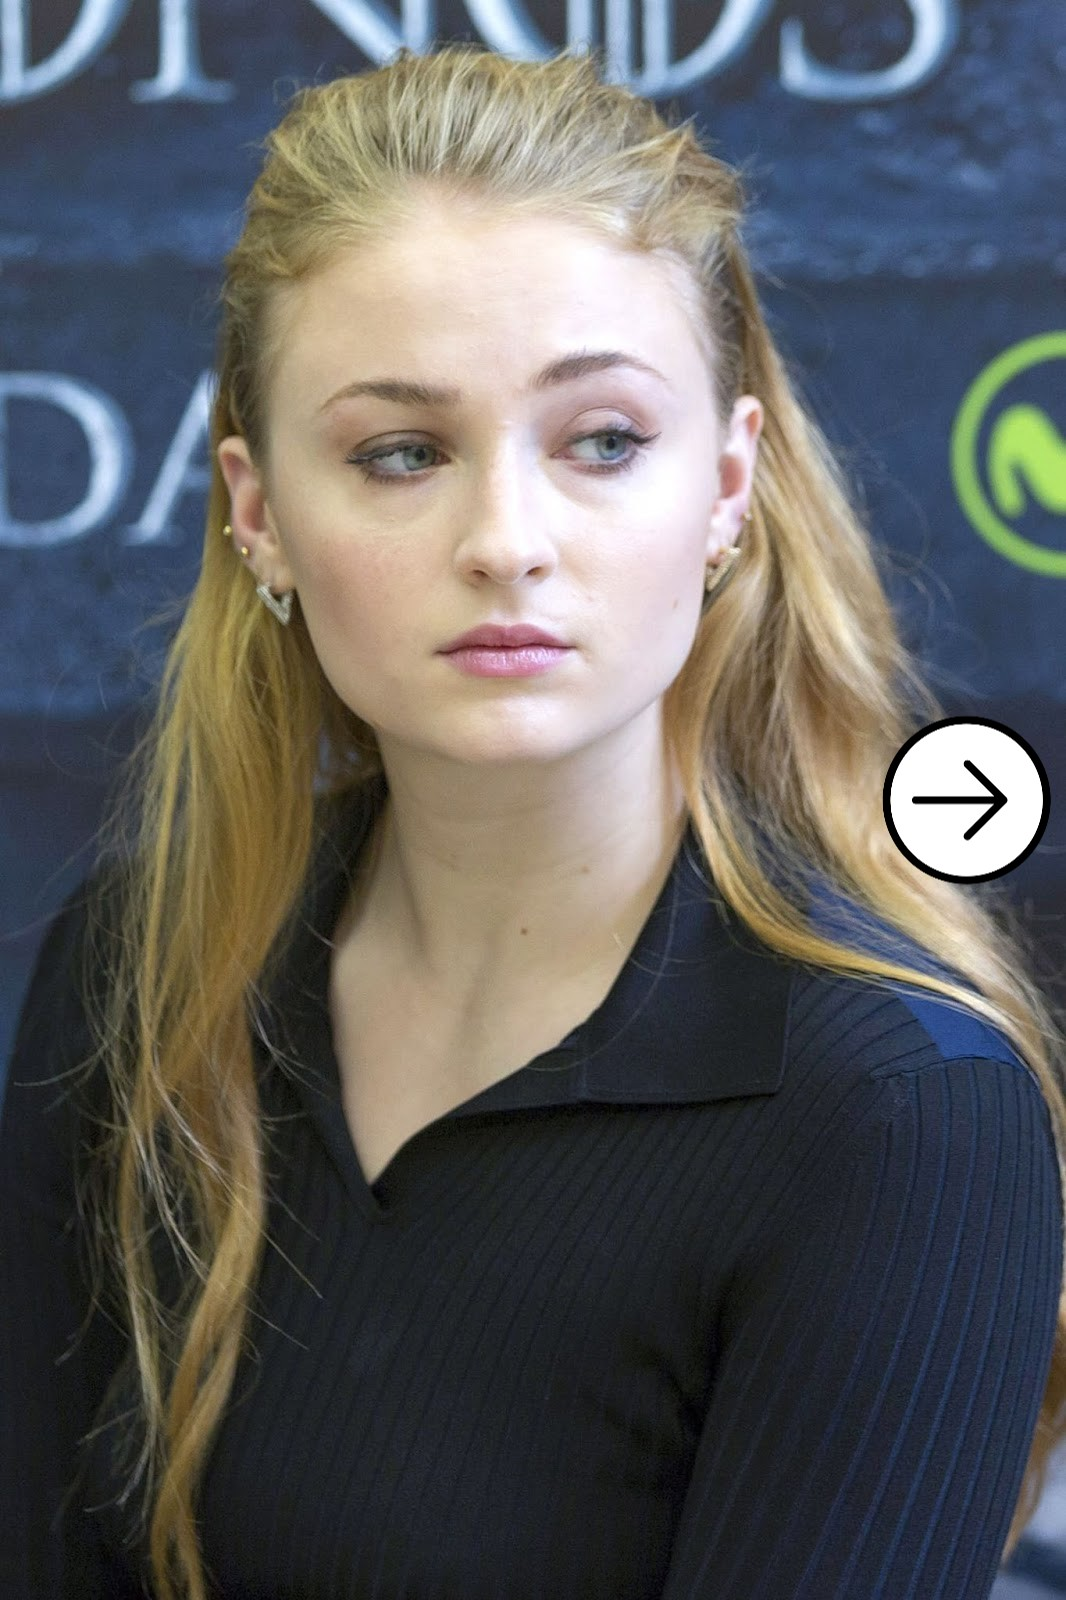 20 photos of Sophia Turner you have never seen before 15